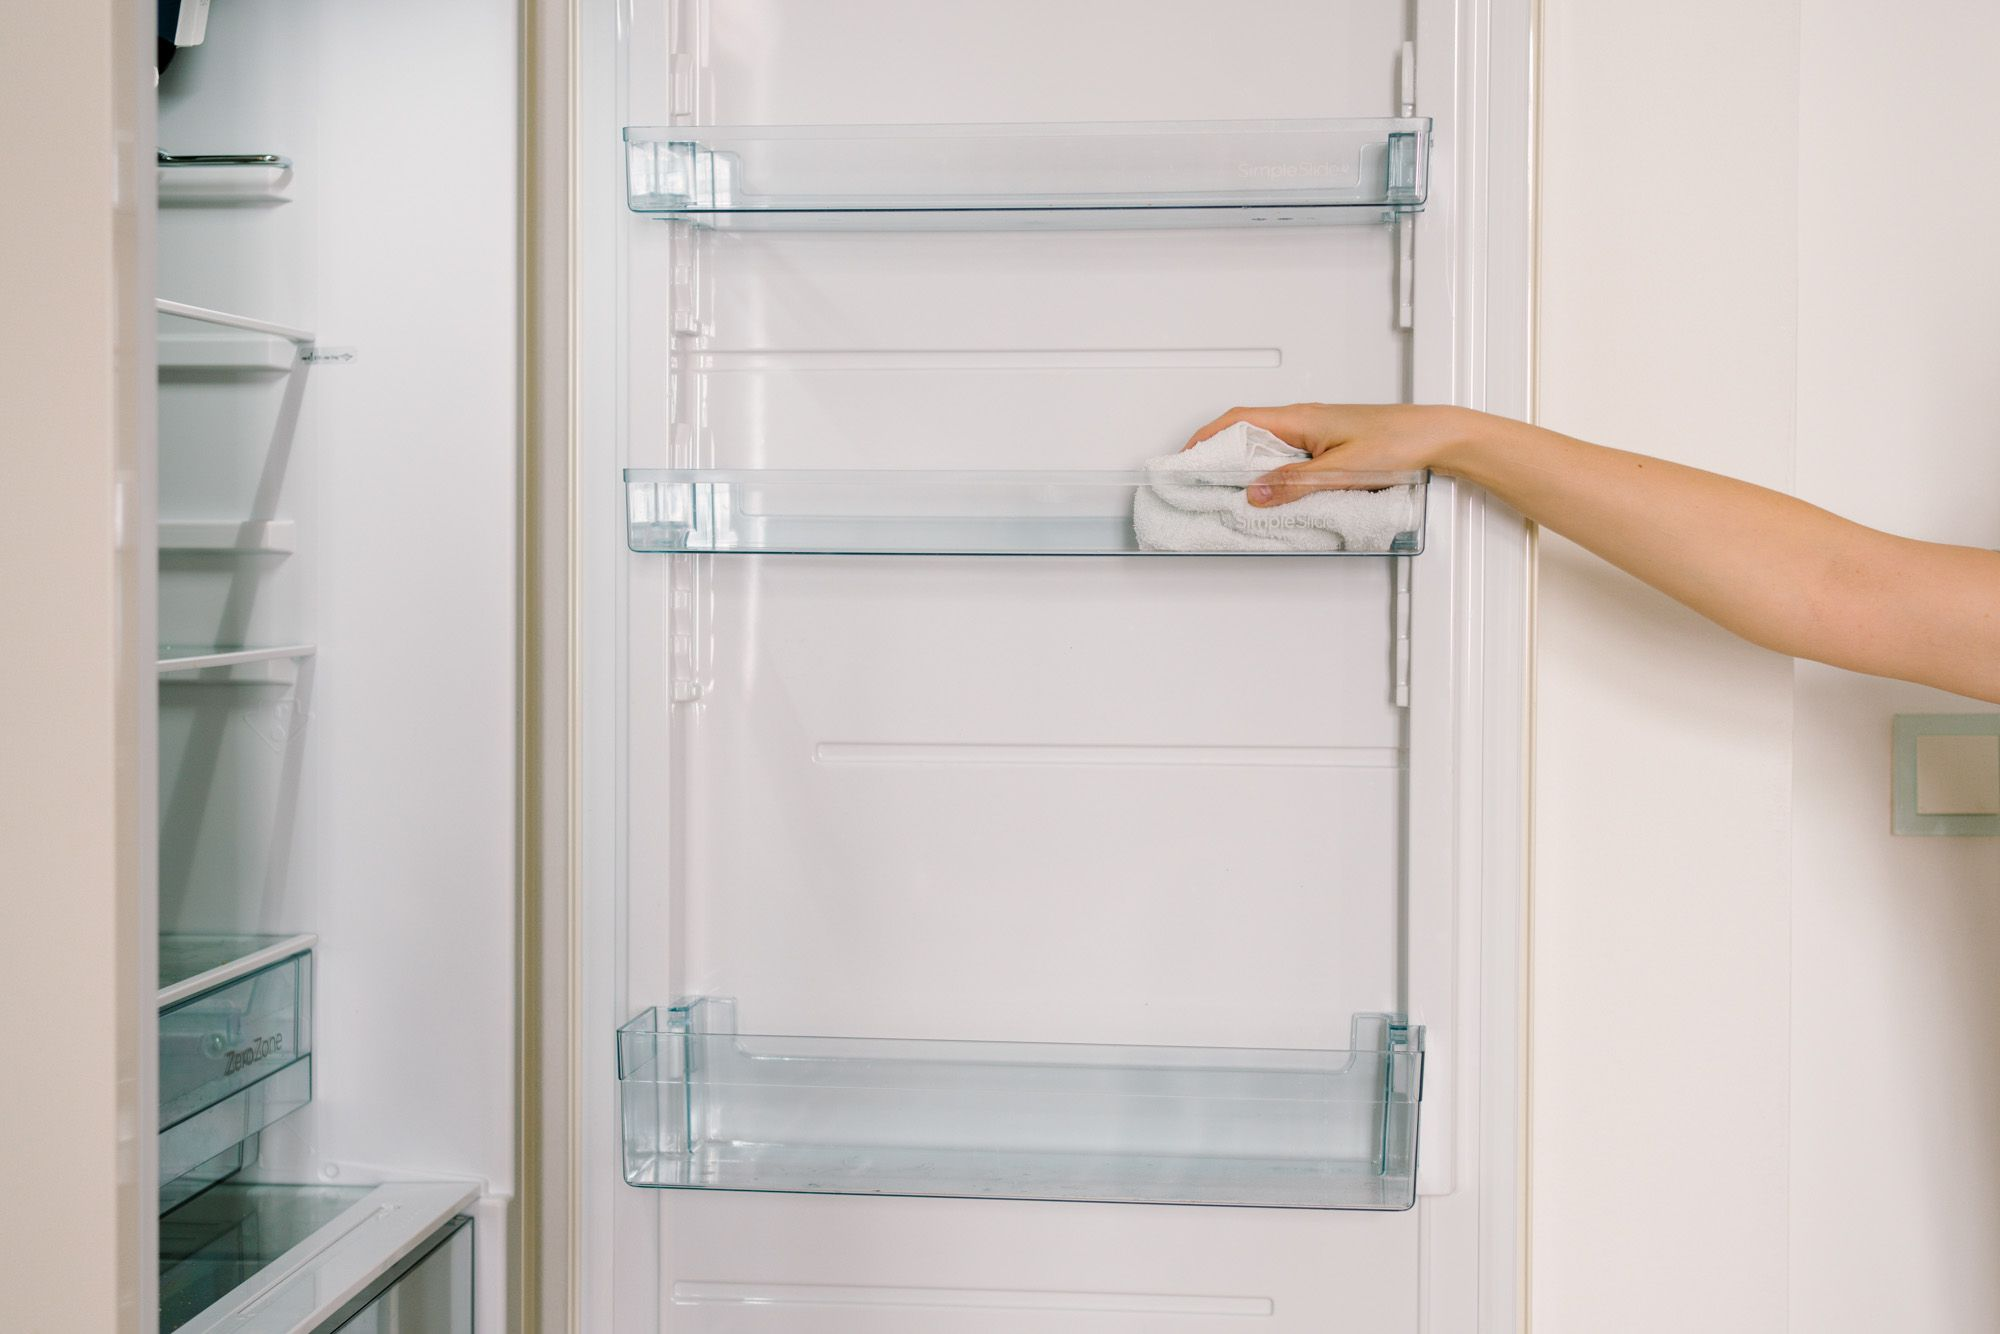 person wiping down refrigerator shelves